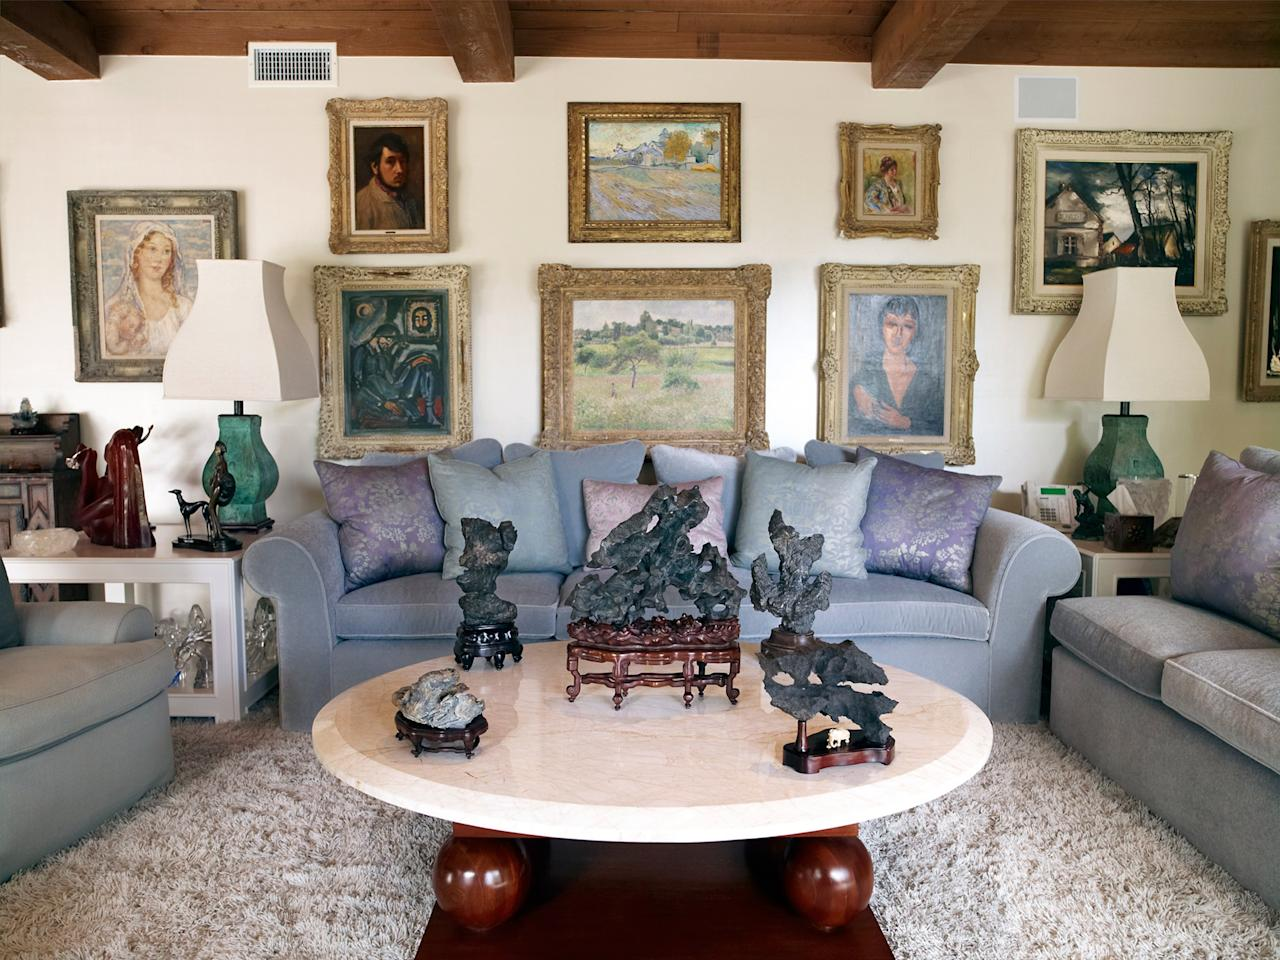 <p>An additional view of the living room with various pieces from Taylor's art collection.</p>